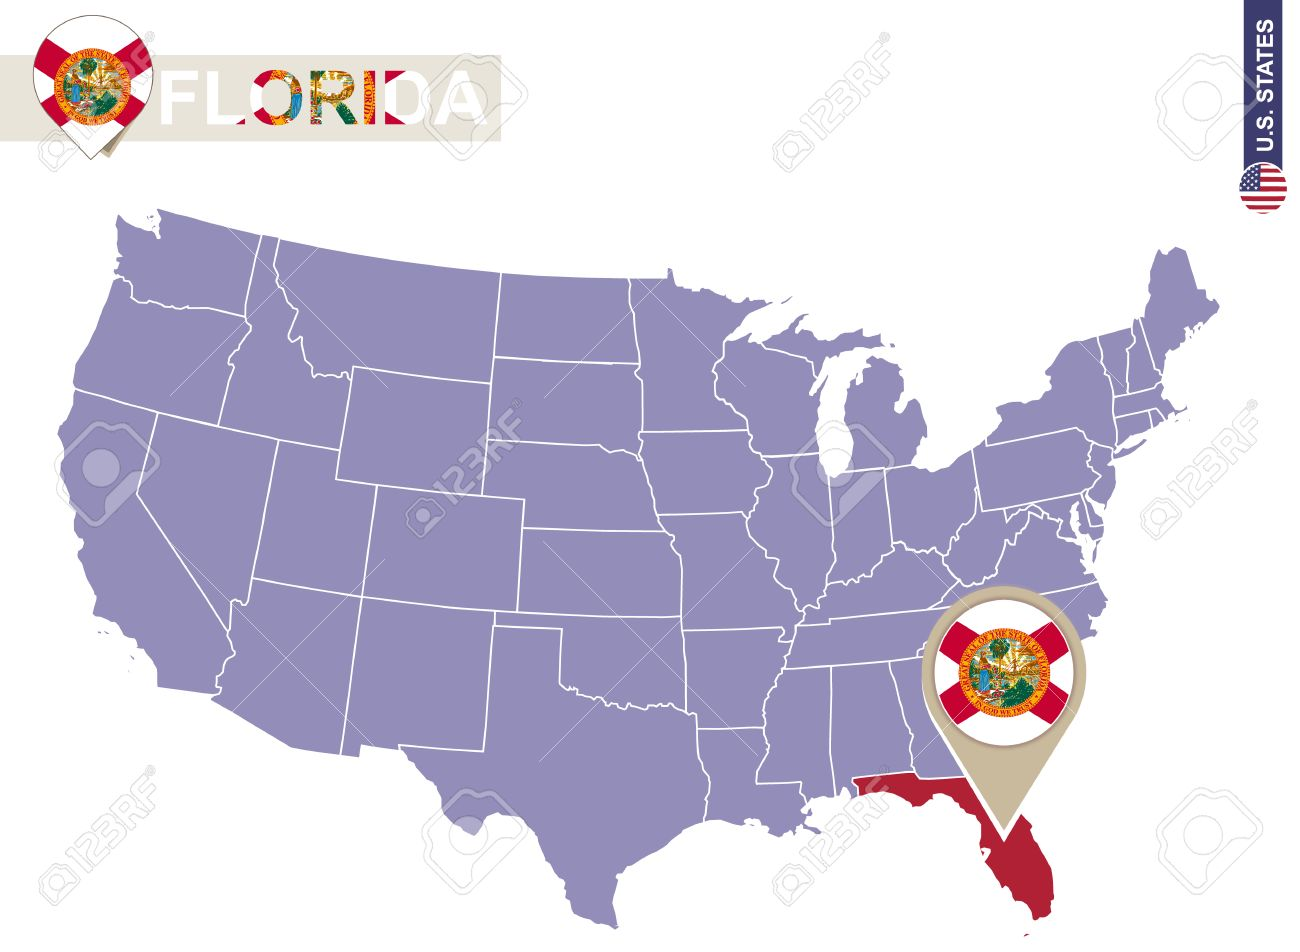 Florida State On USA Map Florida Flag And Map US States Royalty - Maps of the us states